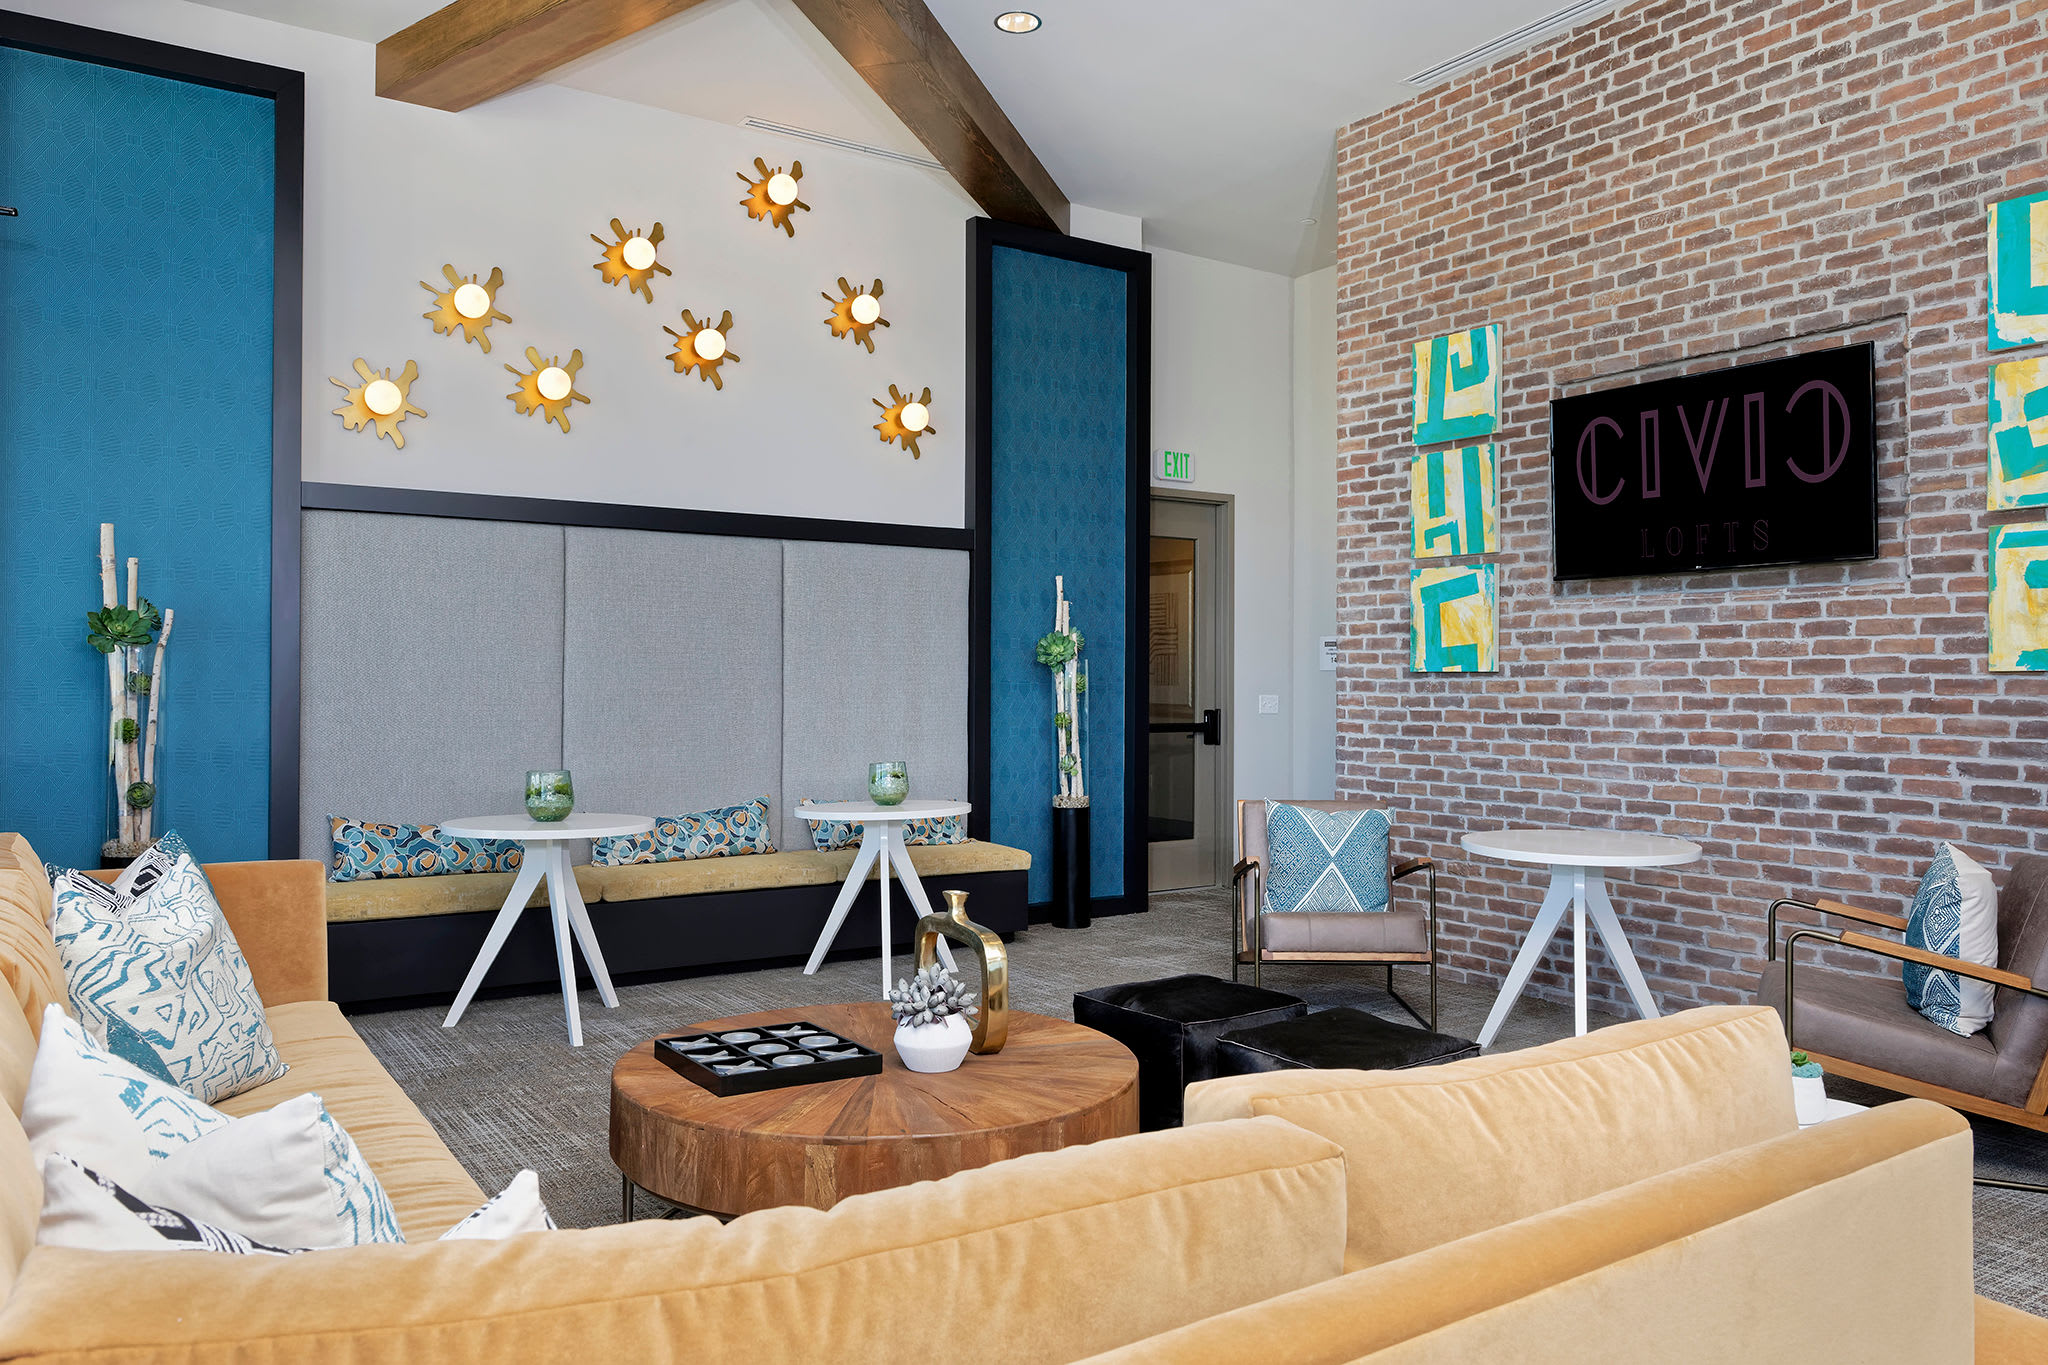 Modern decorated comfortable lounge at  Civic Lofts in Downtown Denver, CO